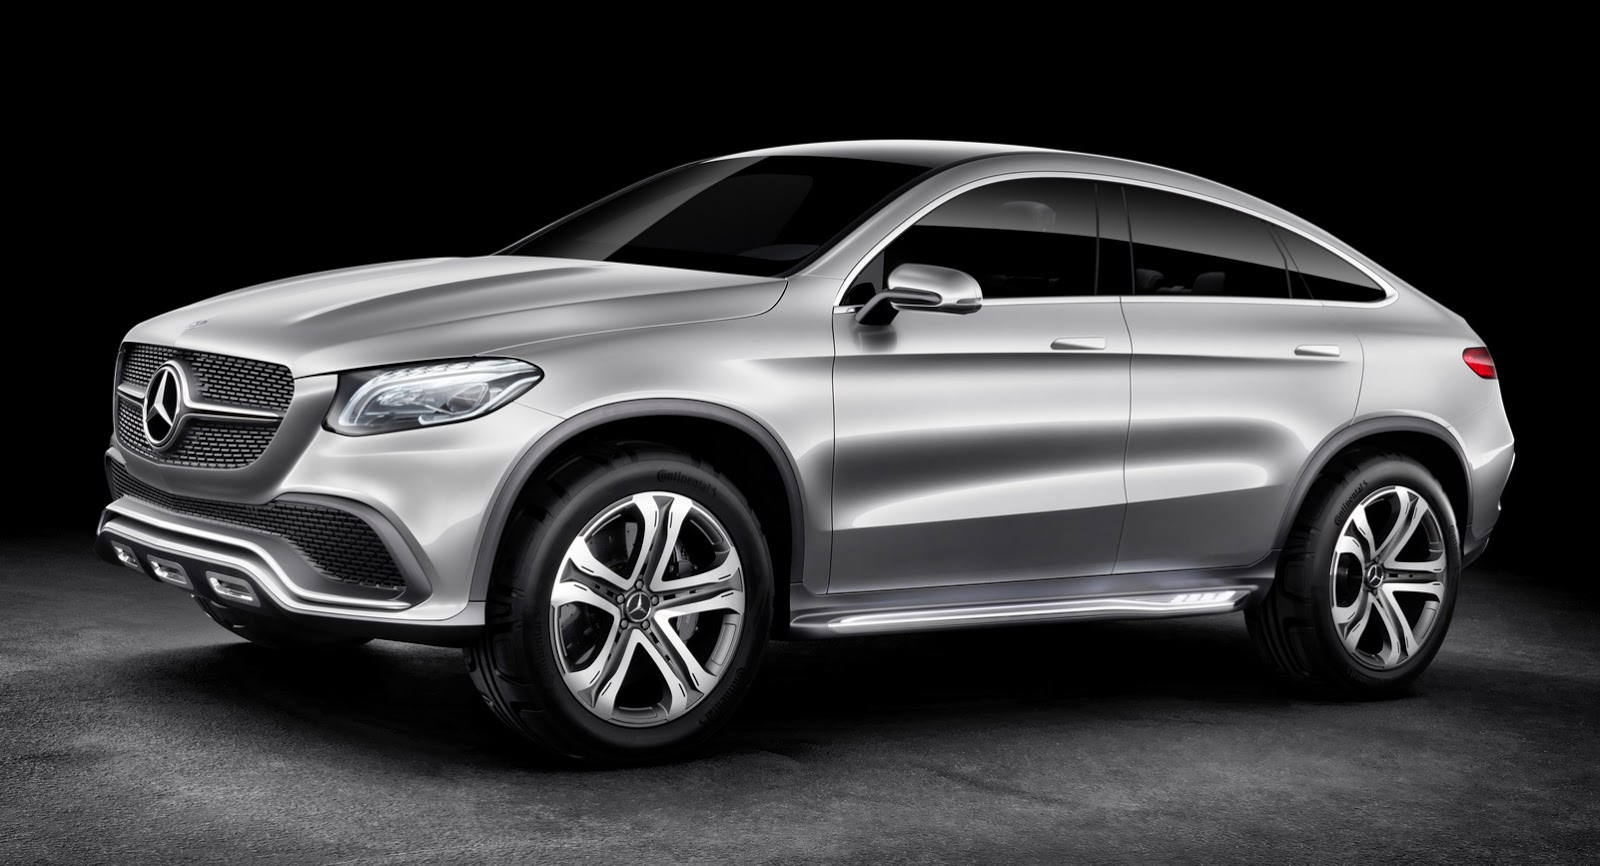 Did Mercedes Concept Coupe Suv Copy The Bmw X6